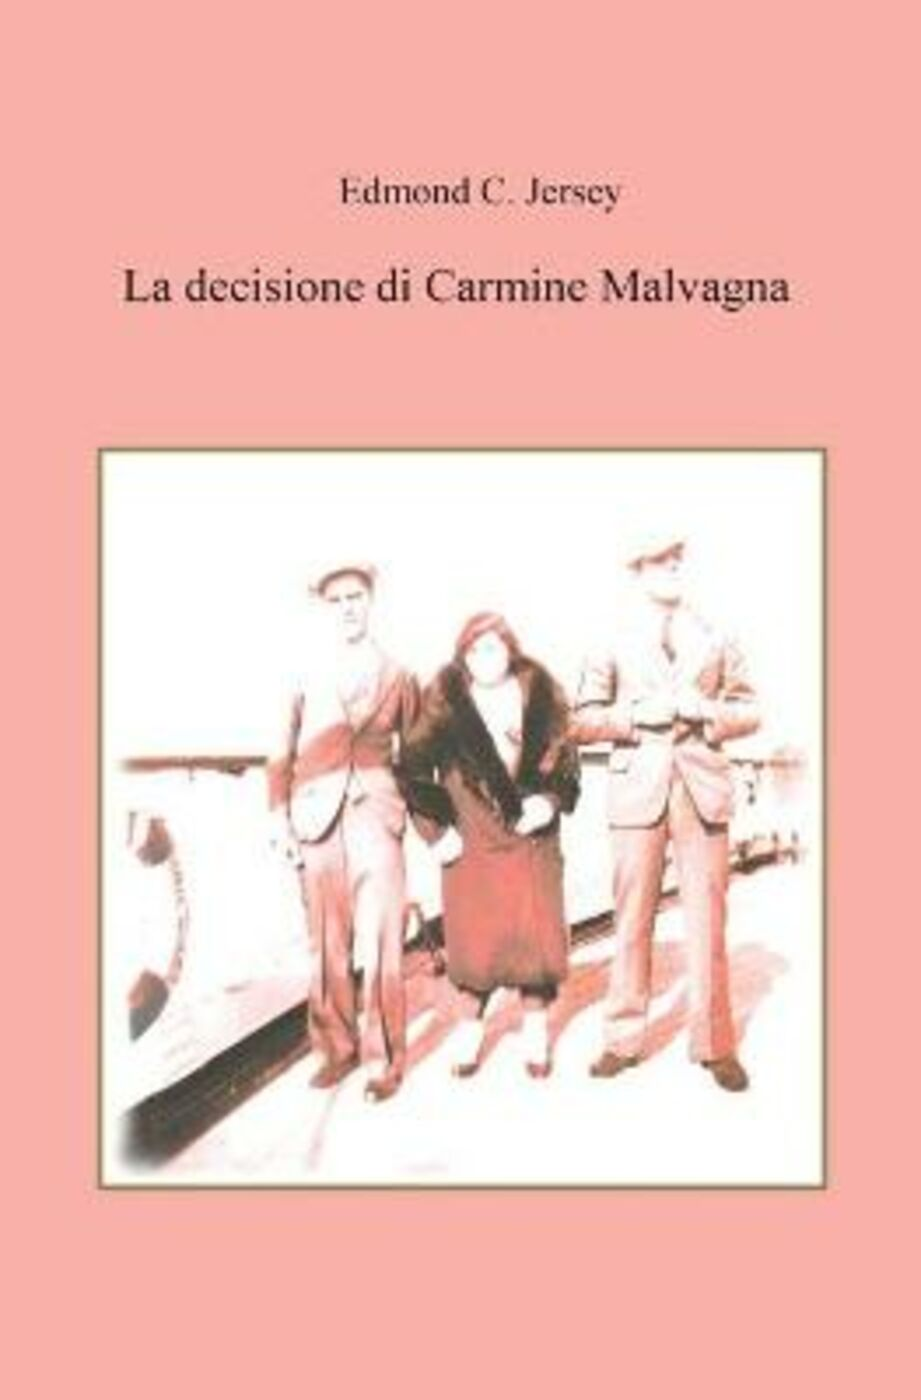 La decisione di Carmine Malvagna